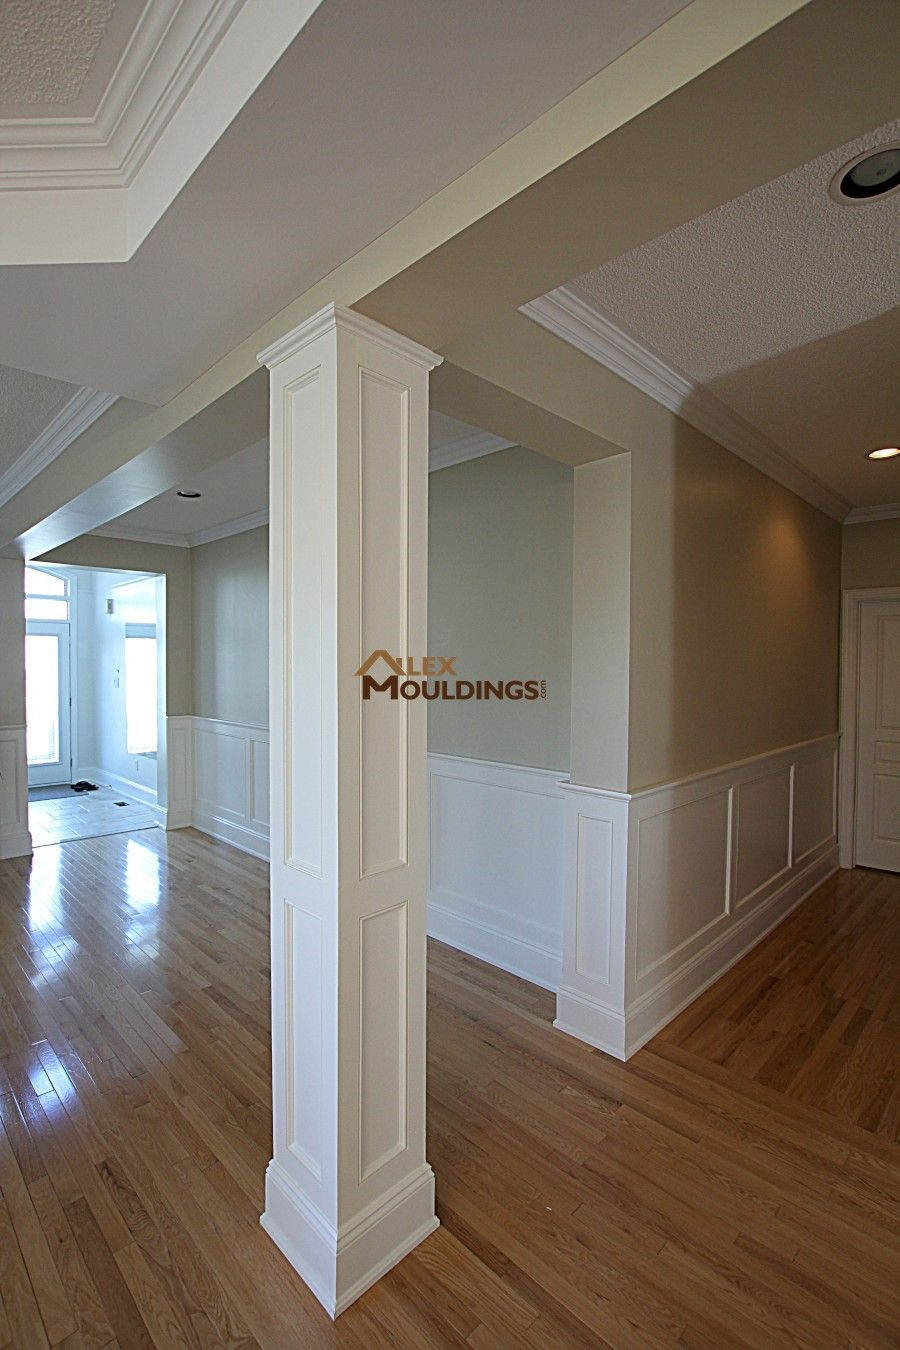 Basement Wainscotting And Columns Dining Room Wainscoting Wainscoting Styles Interior Columns